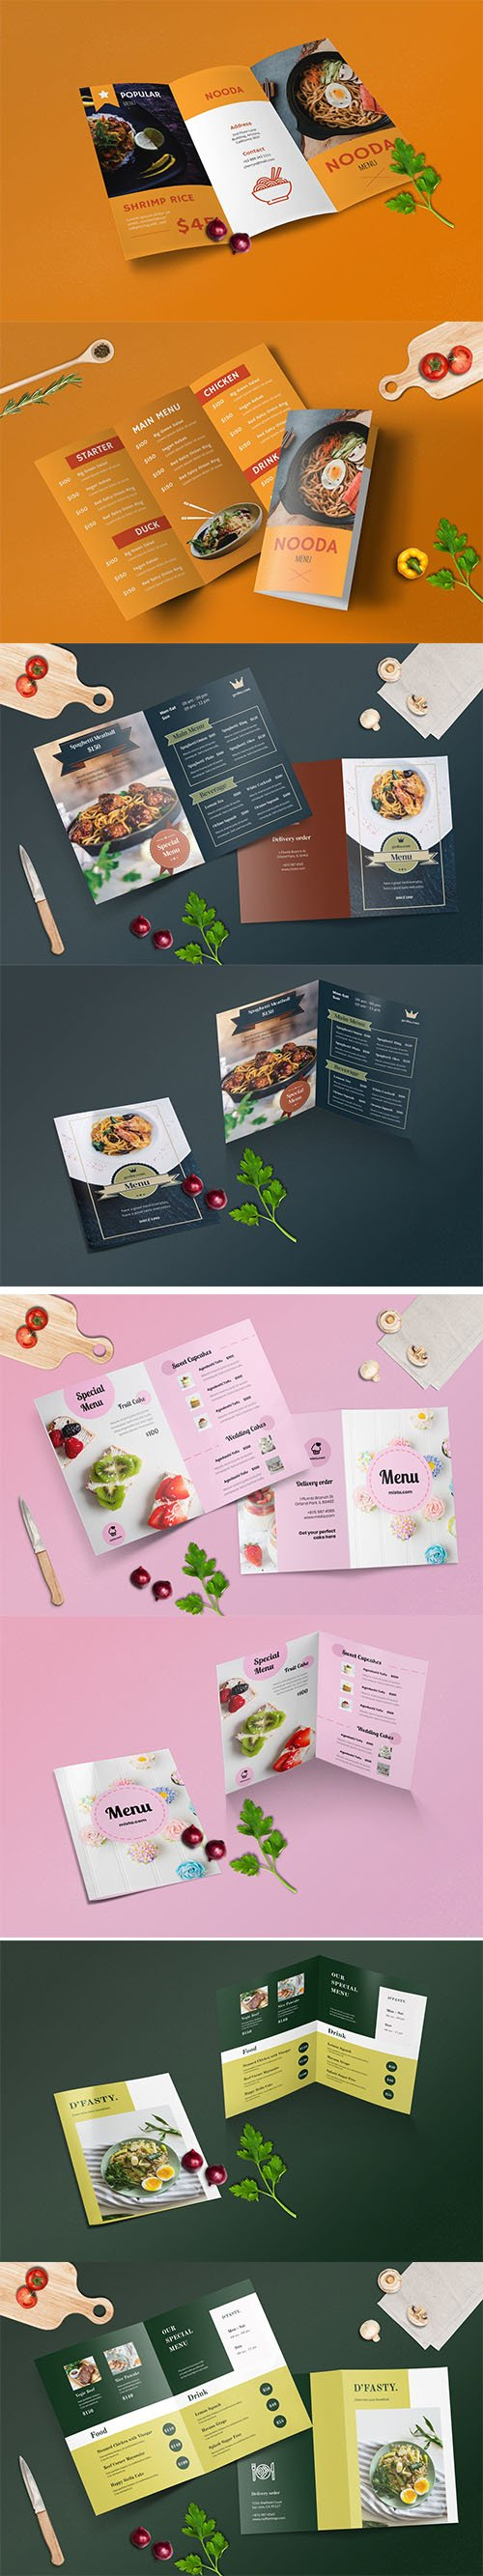 Bifold and Trifold Restaurant Menu Vector Template Set